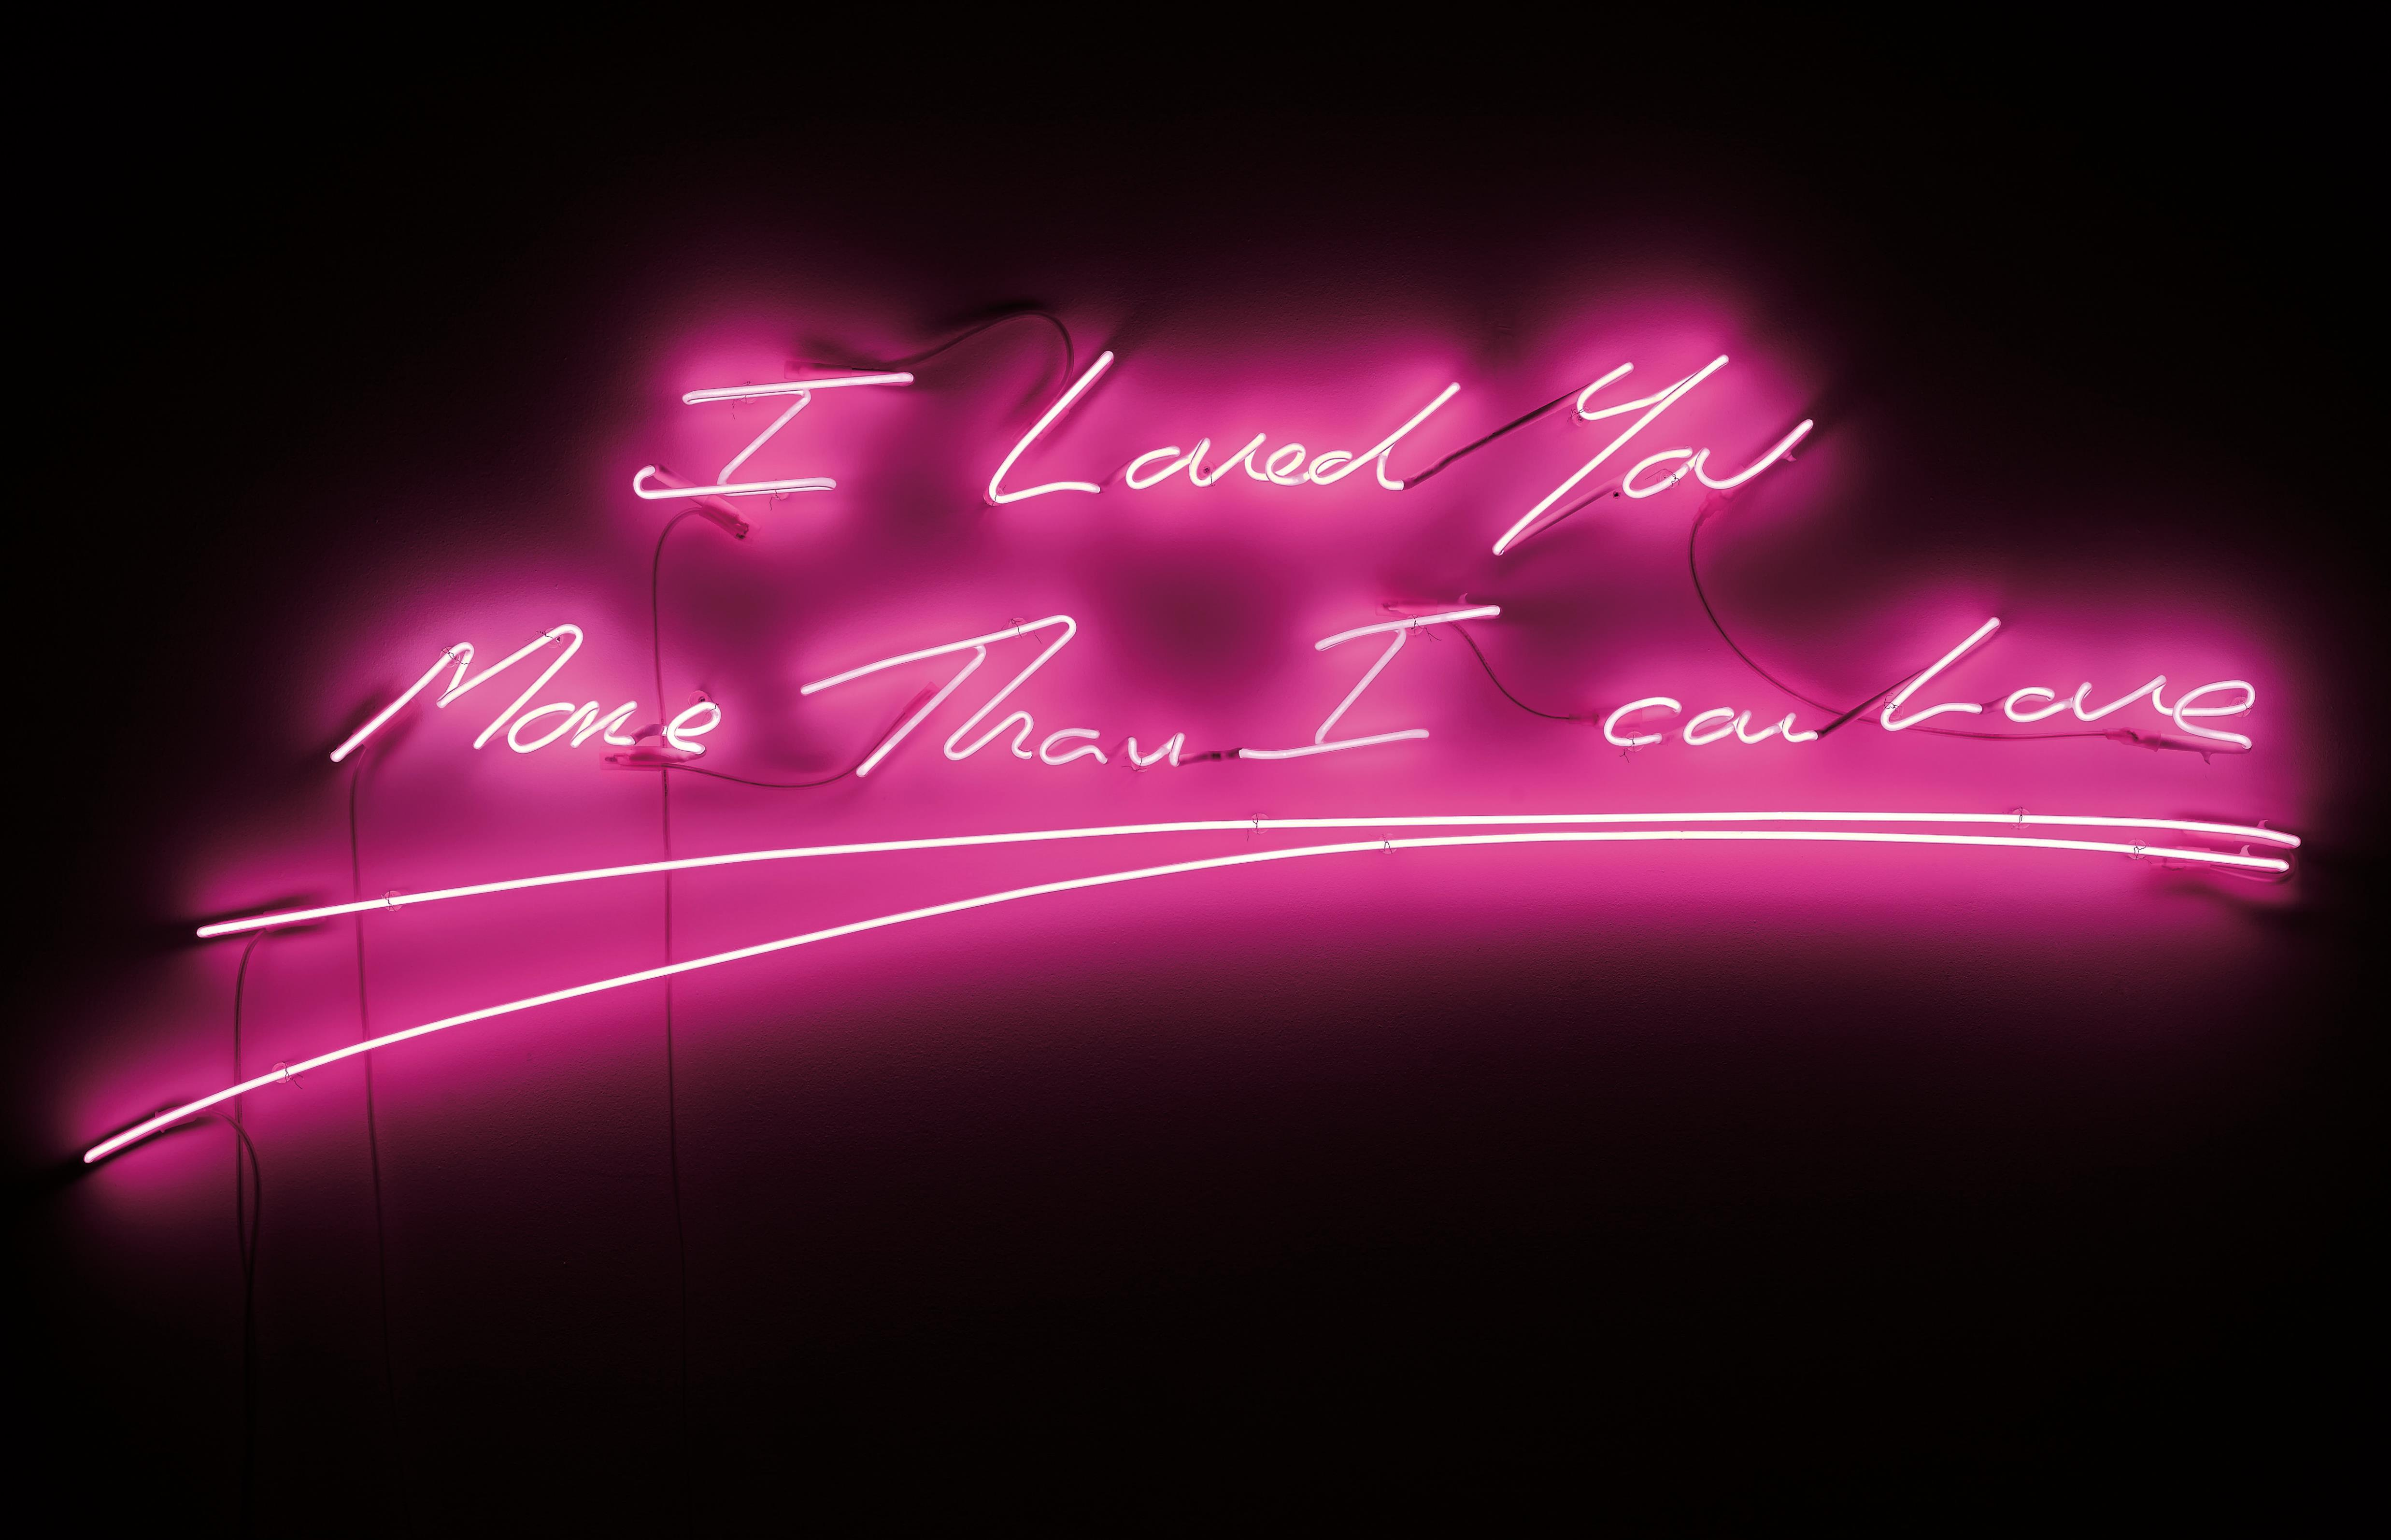 Tracey Emin-I Loved You More Than I Can Love-2009